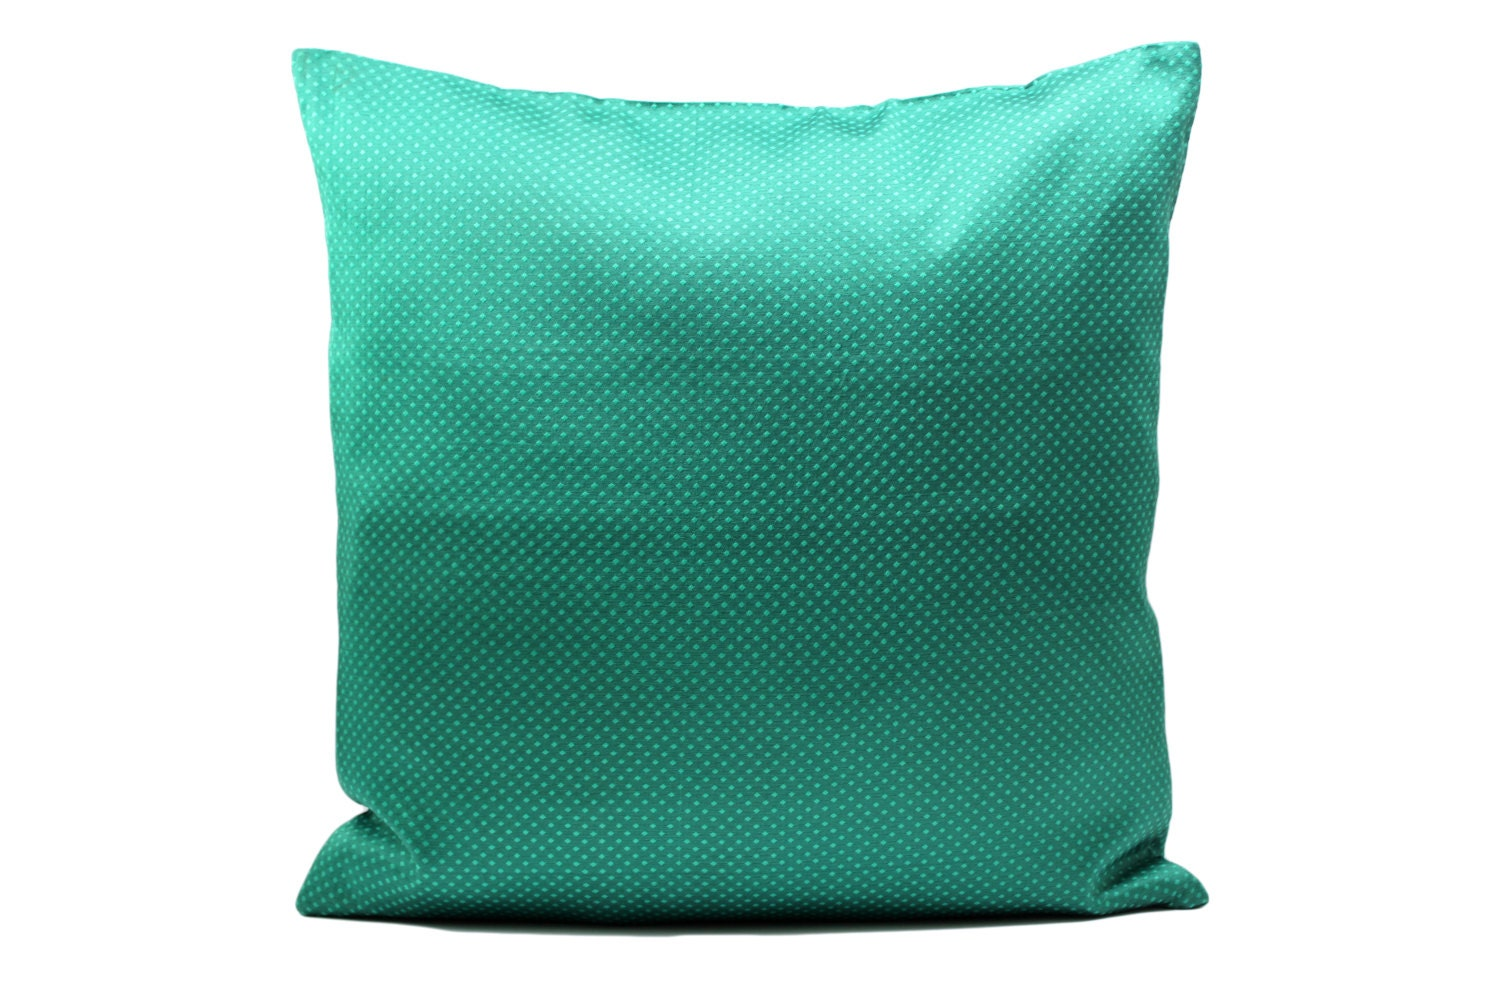 Mint Green Pillow coverDecorative throw Pillow Cover by Fabricasia